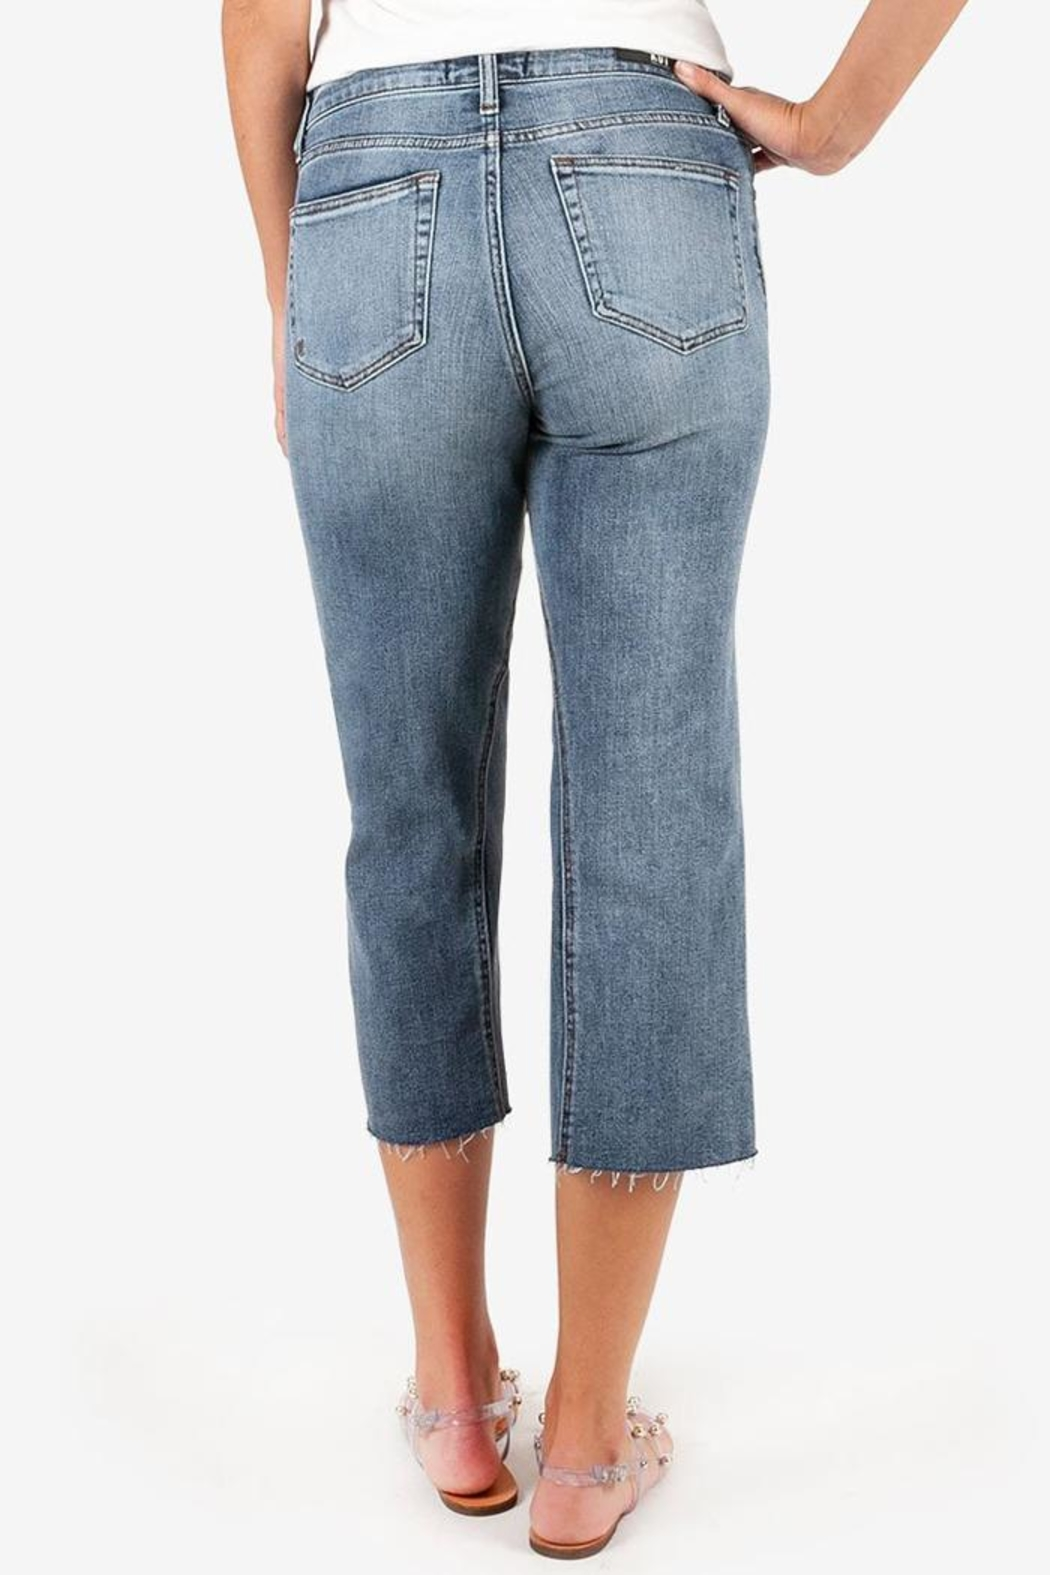 Kut from the Cloth Charlotte Culotte Jean - Side Cropped Image